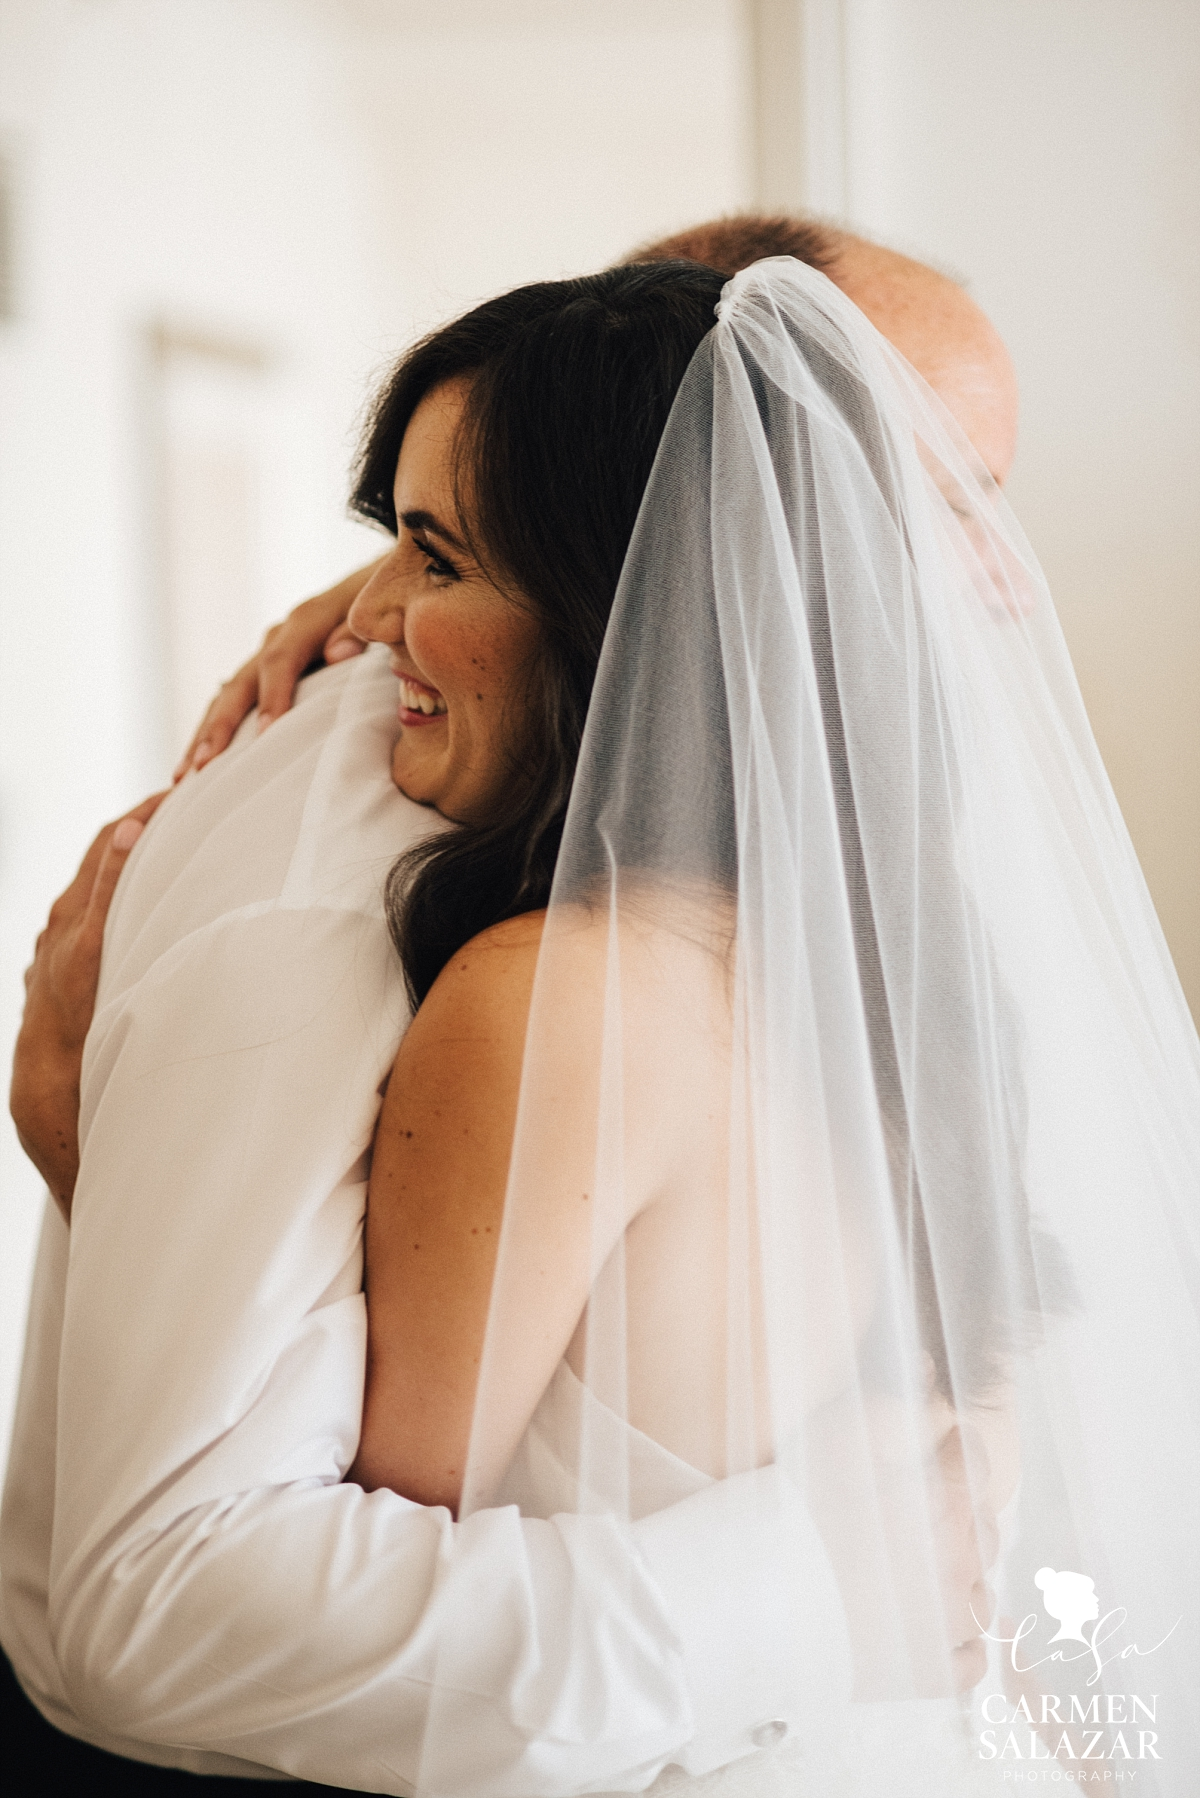 Father seeing the bride for the first time - Carmen Salazar